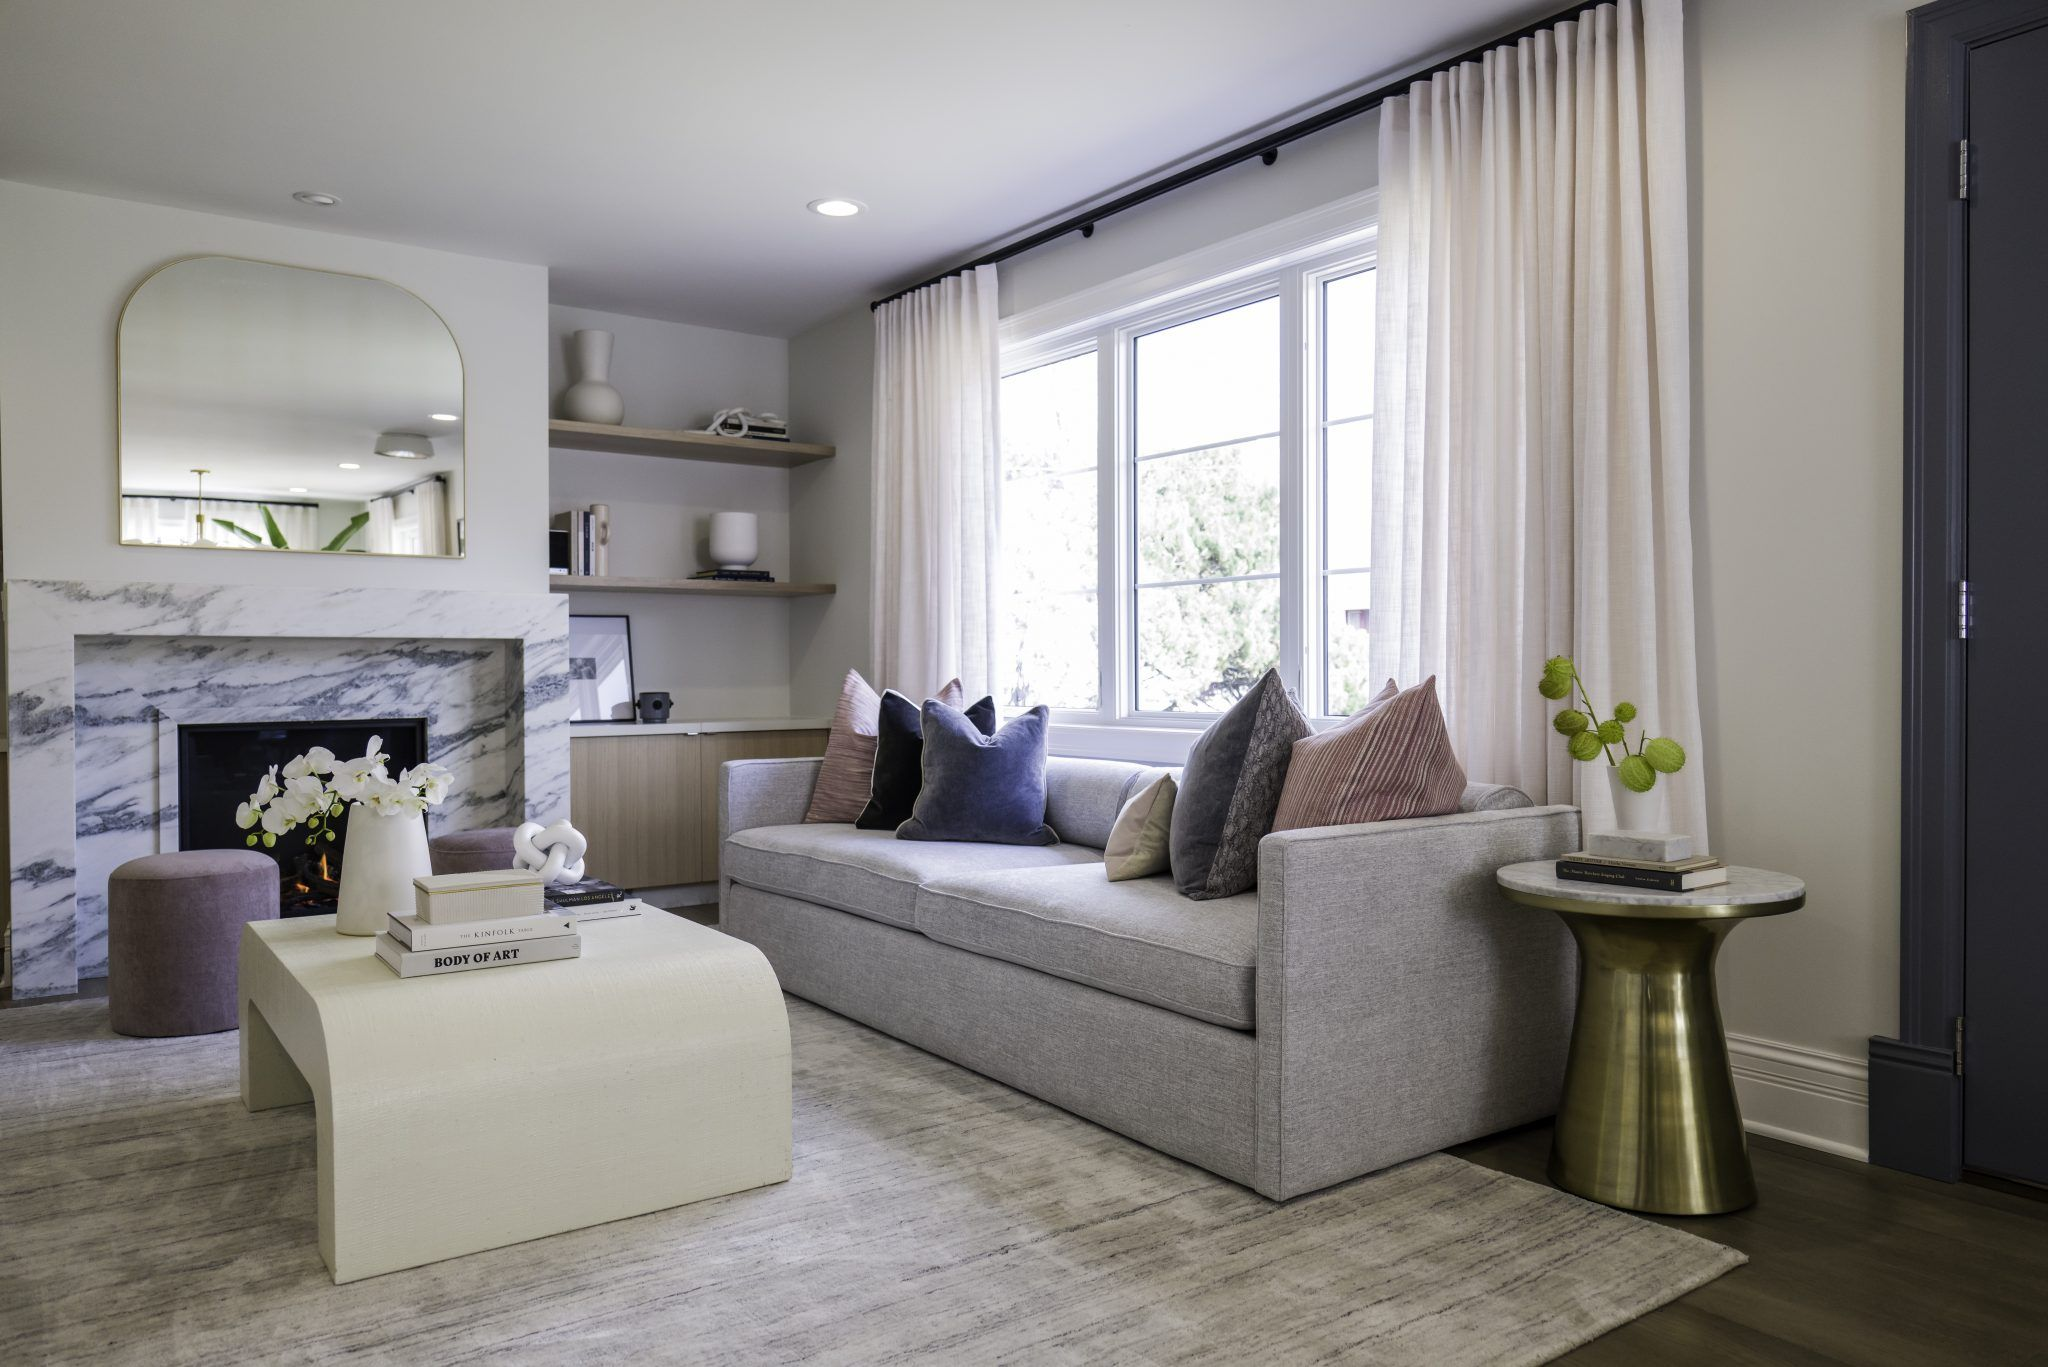 Celebrity Iou Ep 3 With Viola Davis From Close Quarters To Open Space Living Room American Style American Style Living Room White Baseboards Celebrity living rooms decor